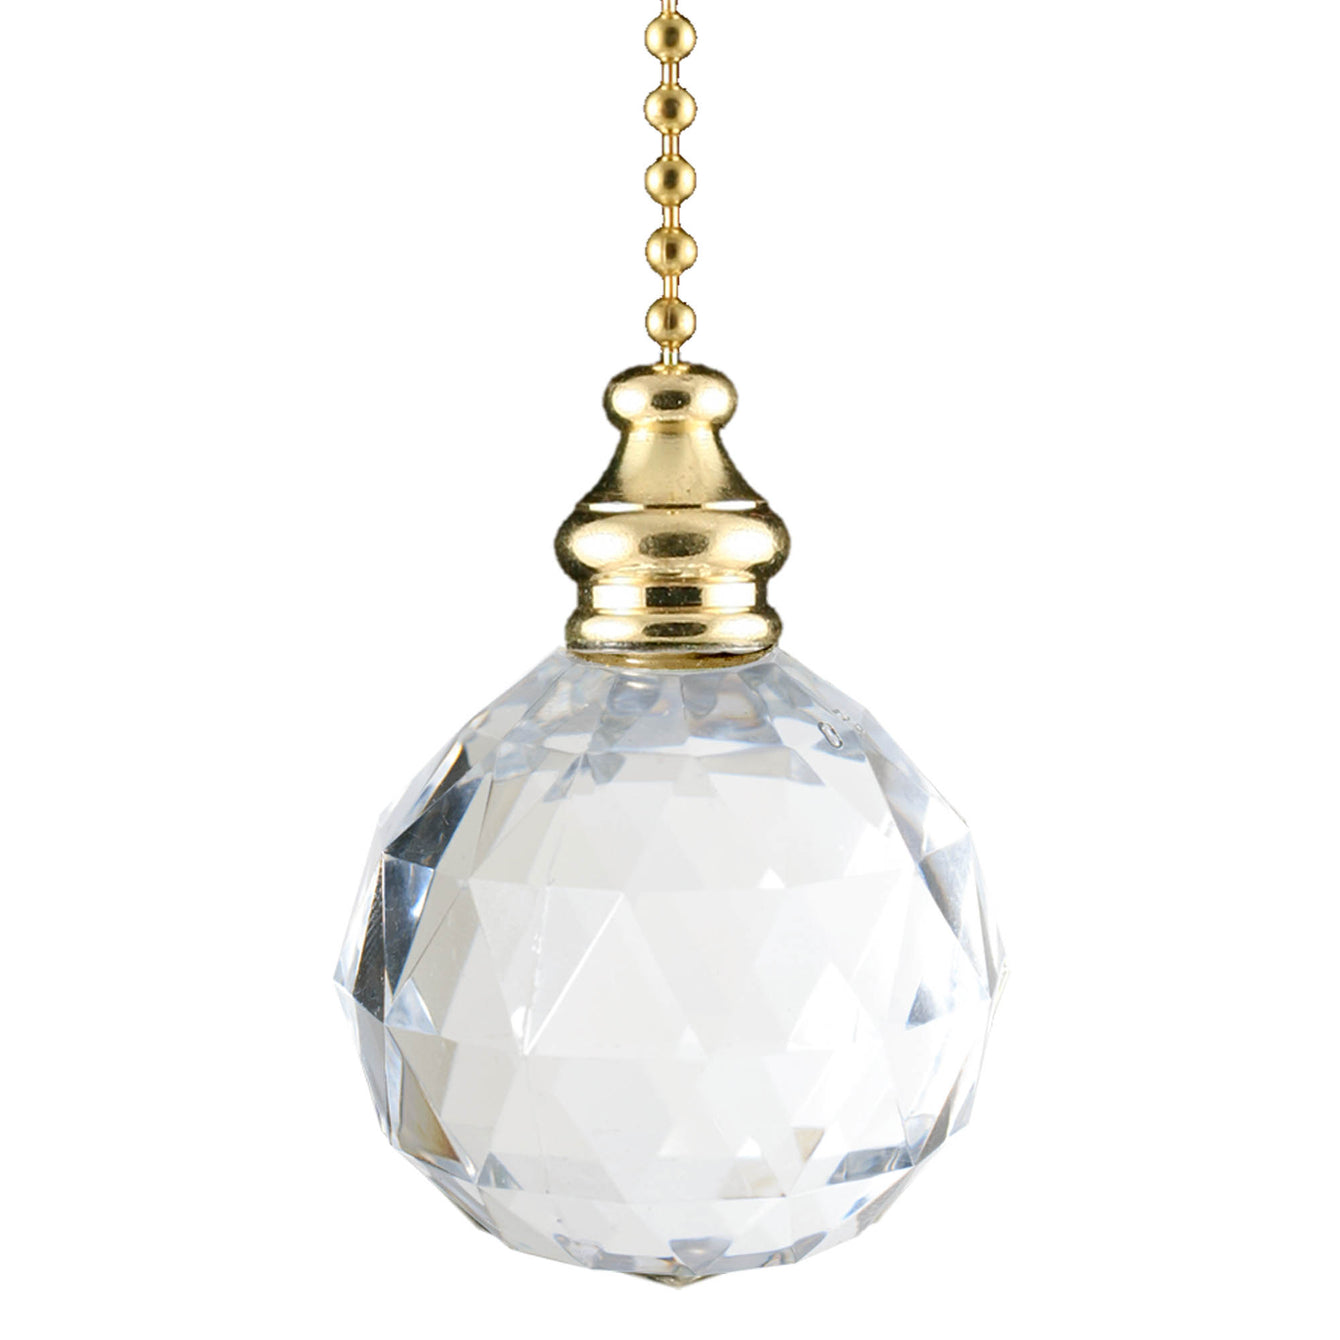 ElekTek Light Pull Chain Cord Brass and Acrylic Crystal Ball With 80cm Matching Chain - Buy It Better